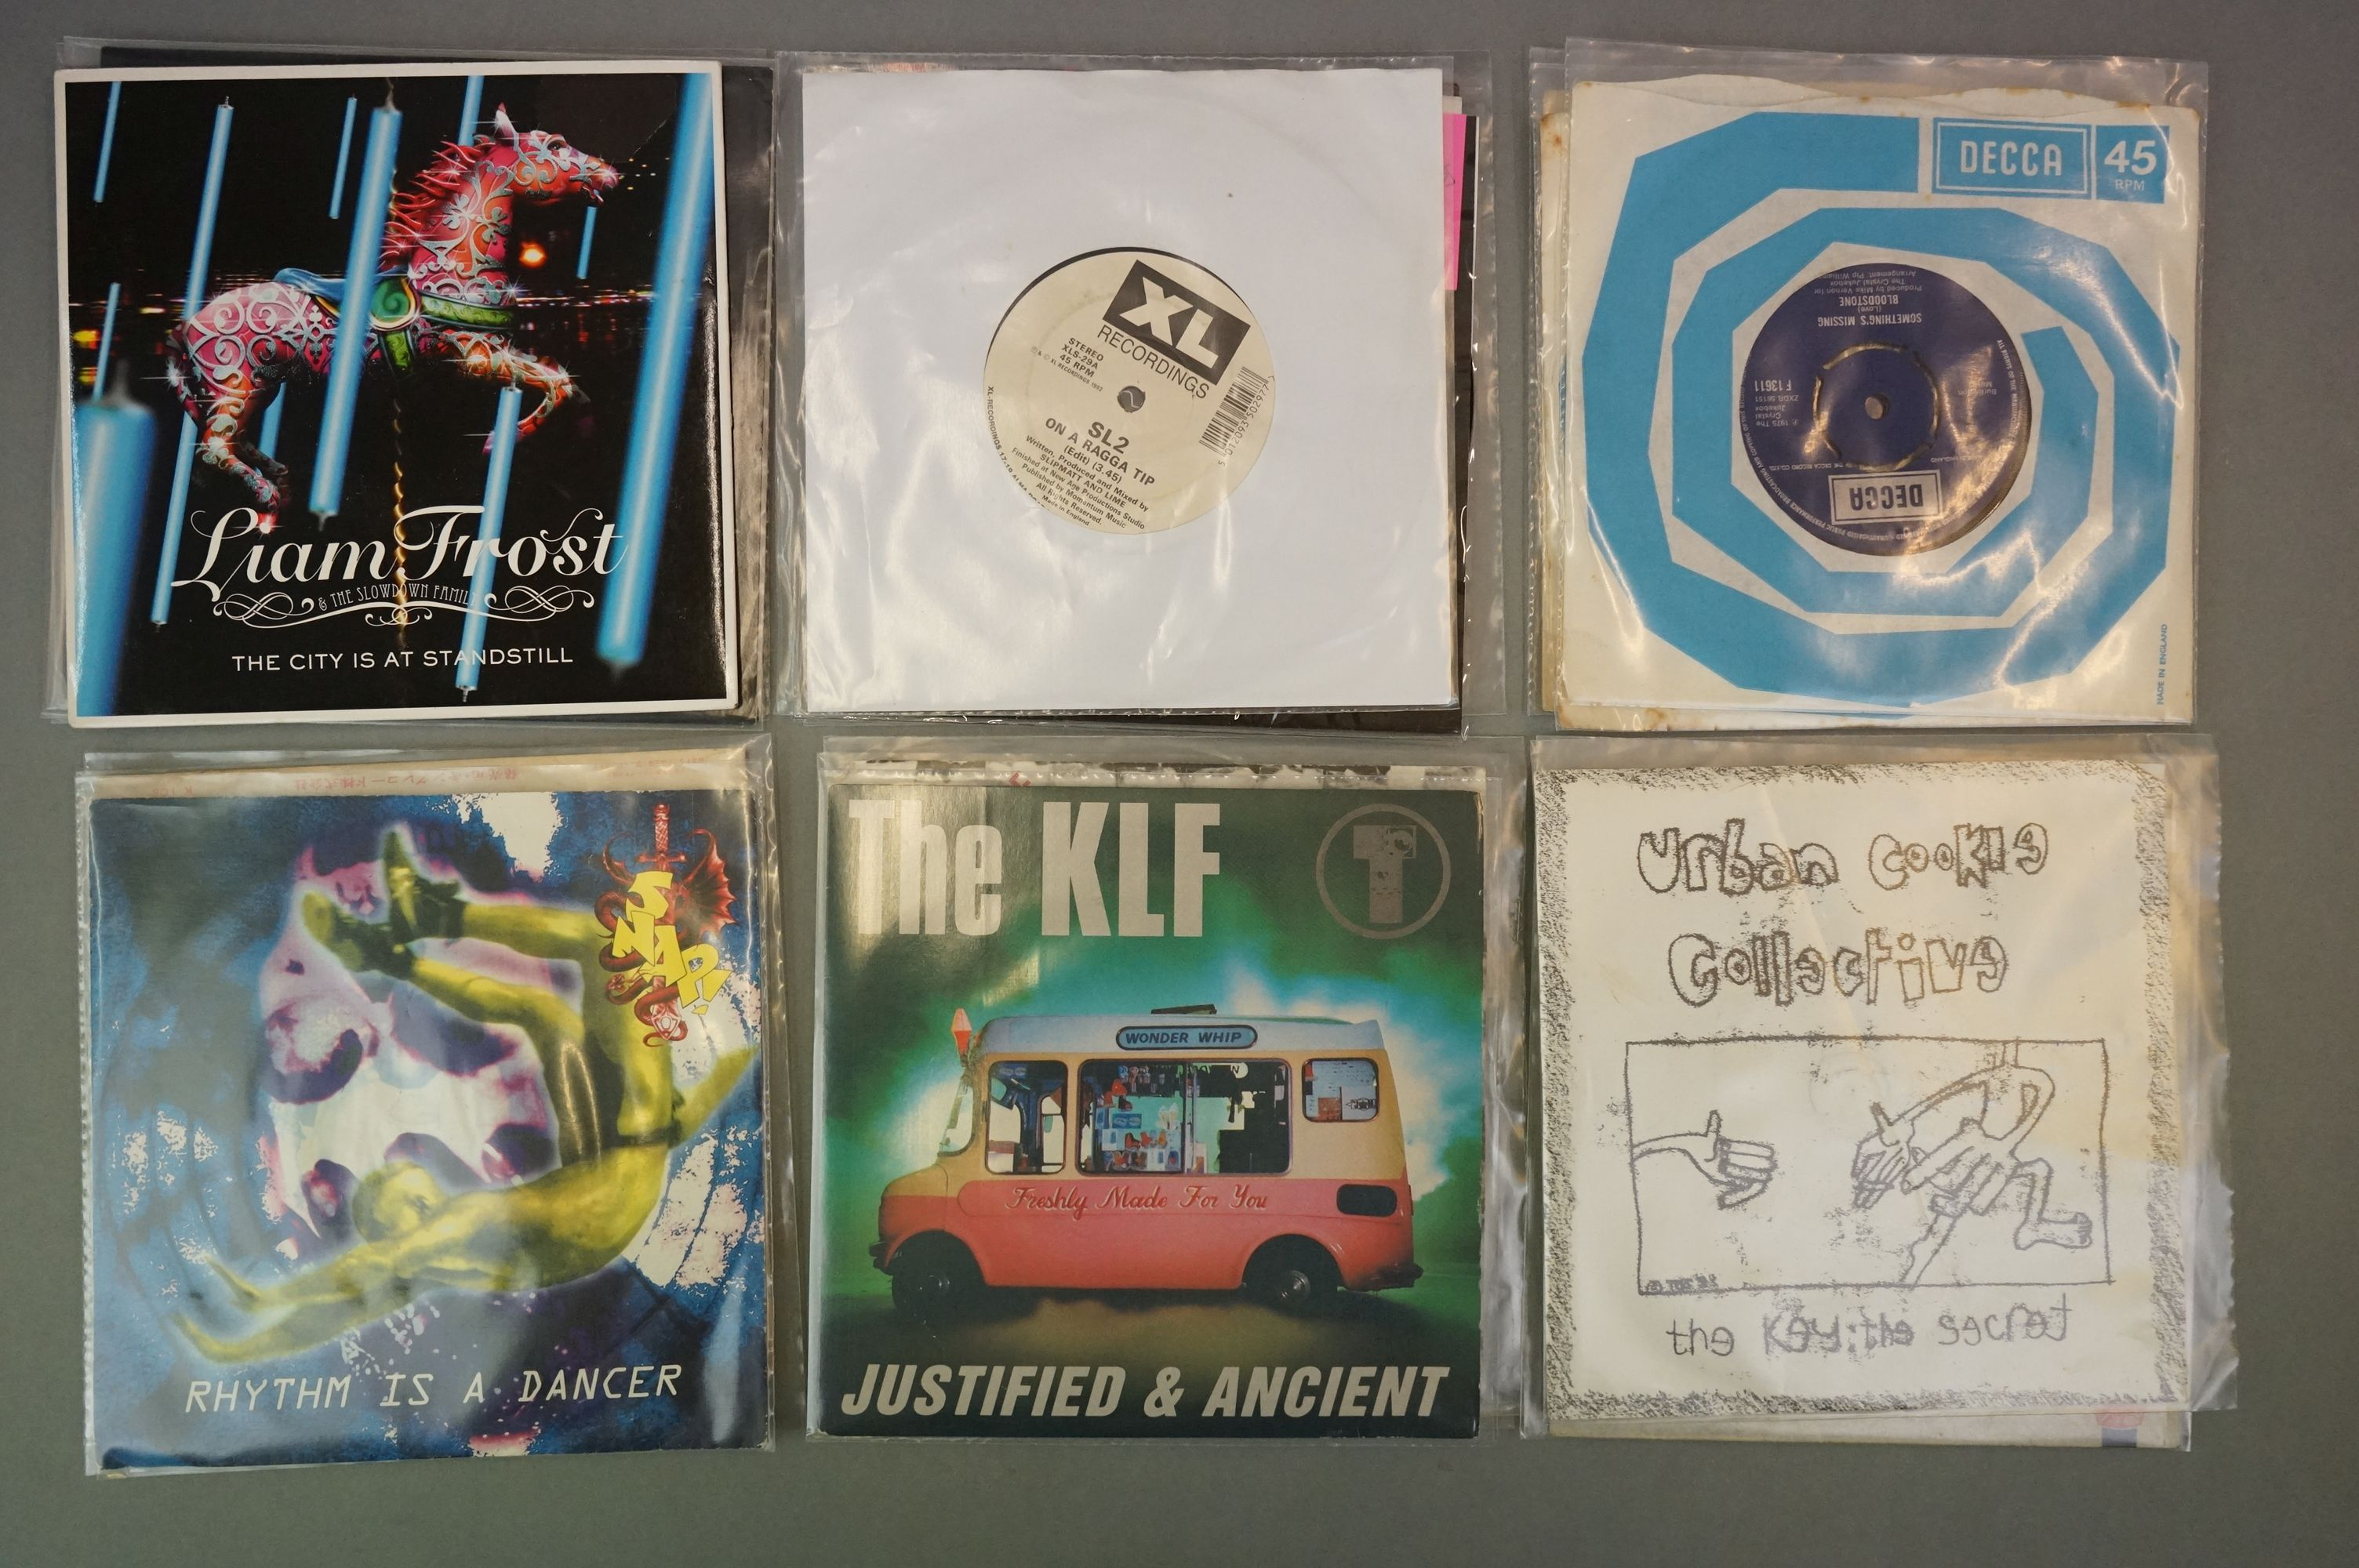 """Vinyl - Collection of approx 20 7"""" singles spanning genres and decades including 90's examples - Image 5 of 6"""